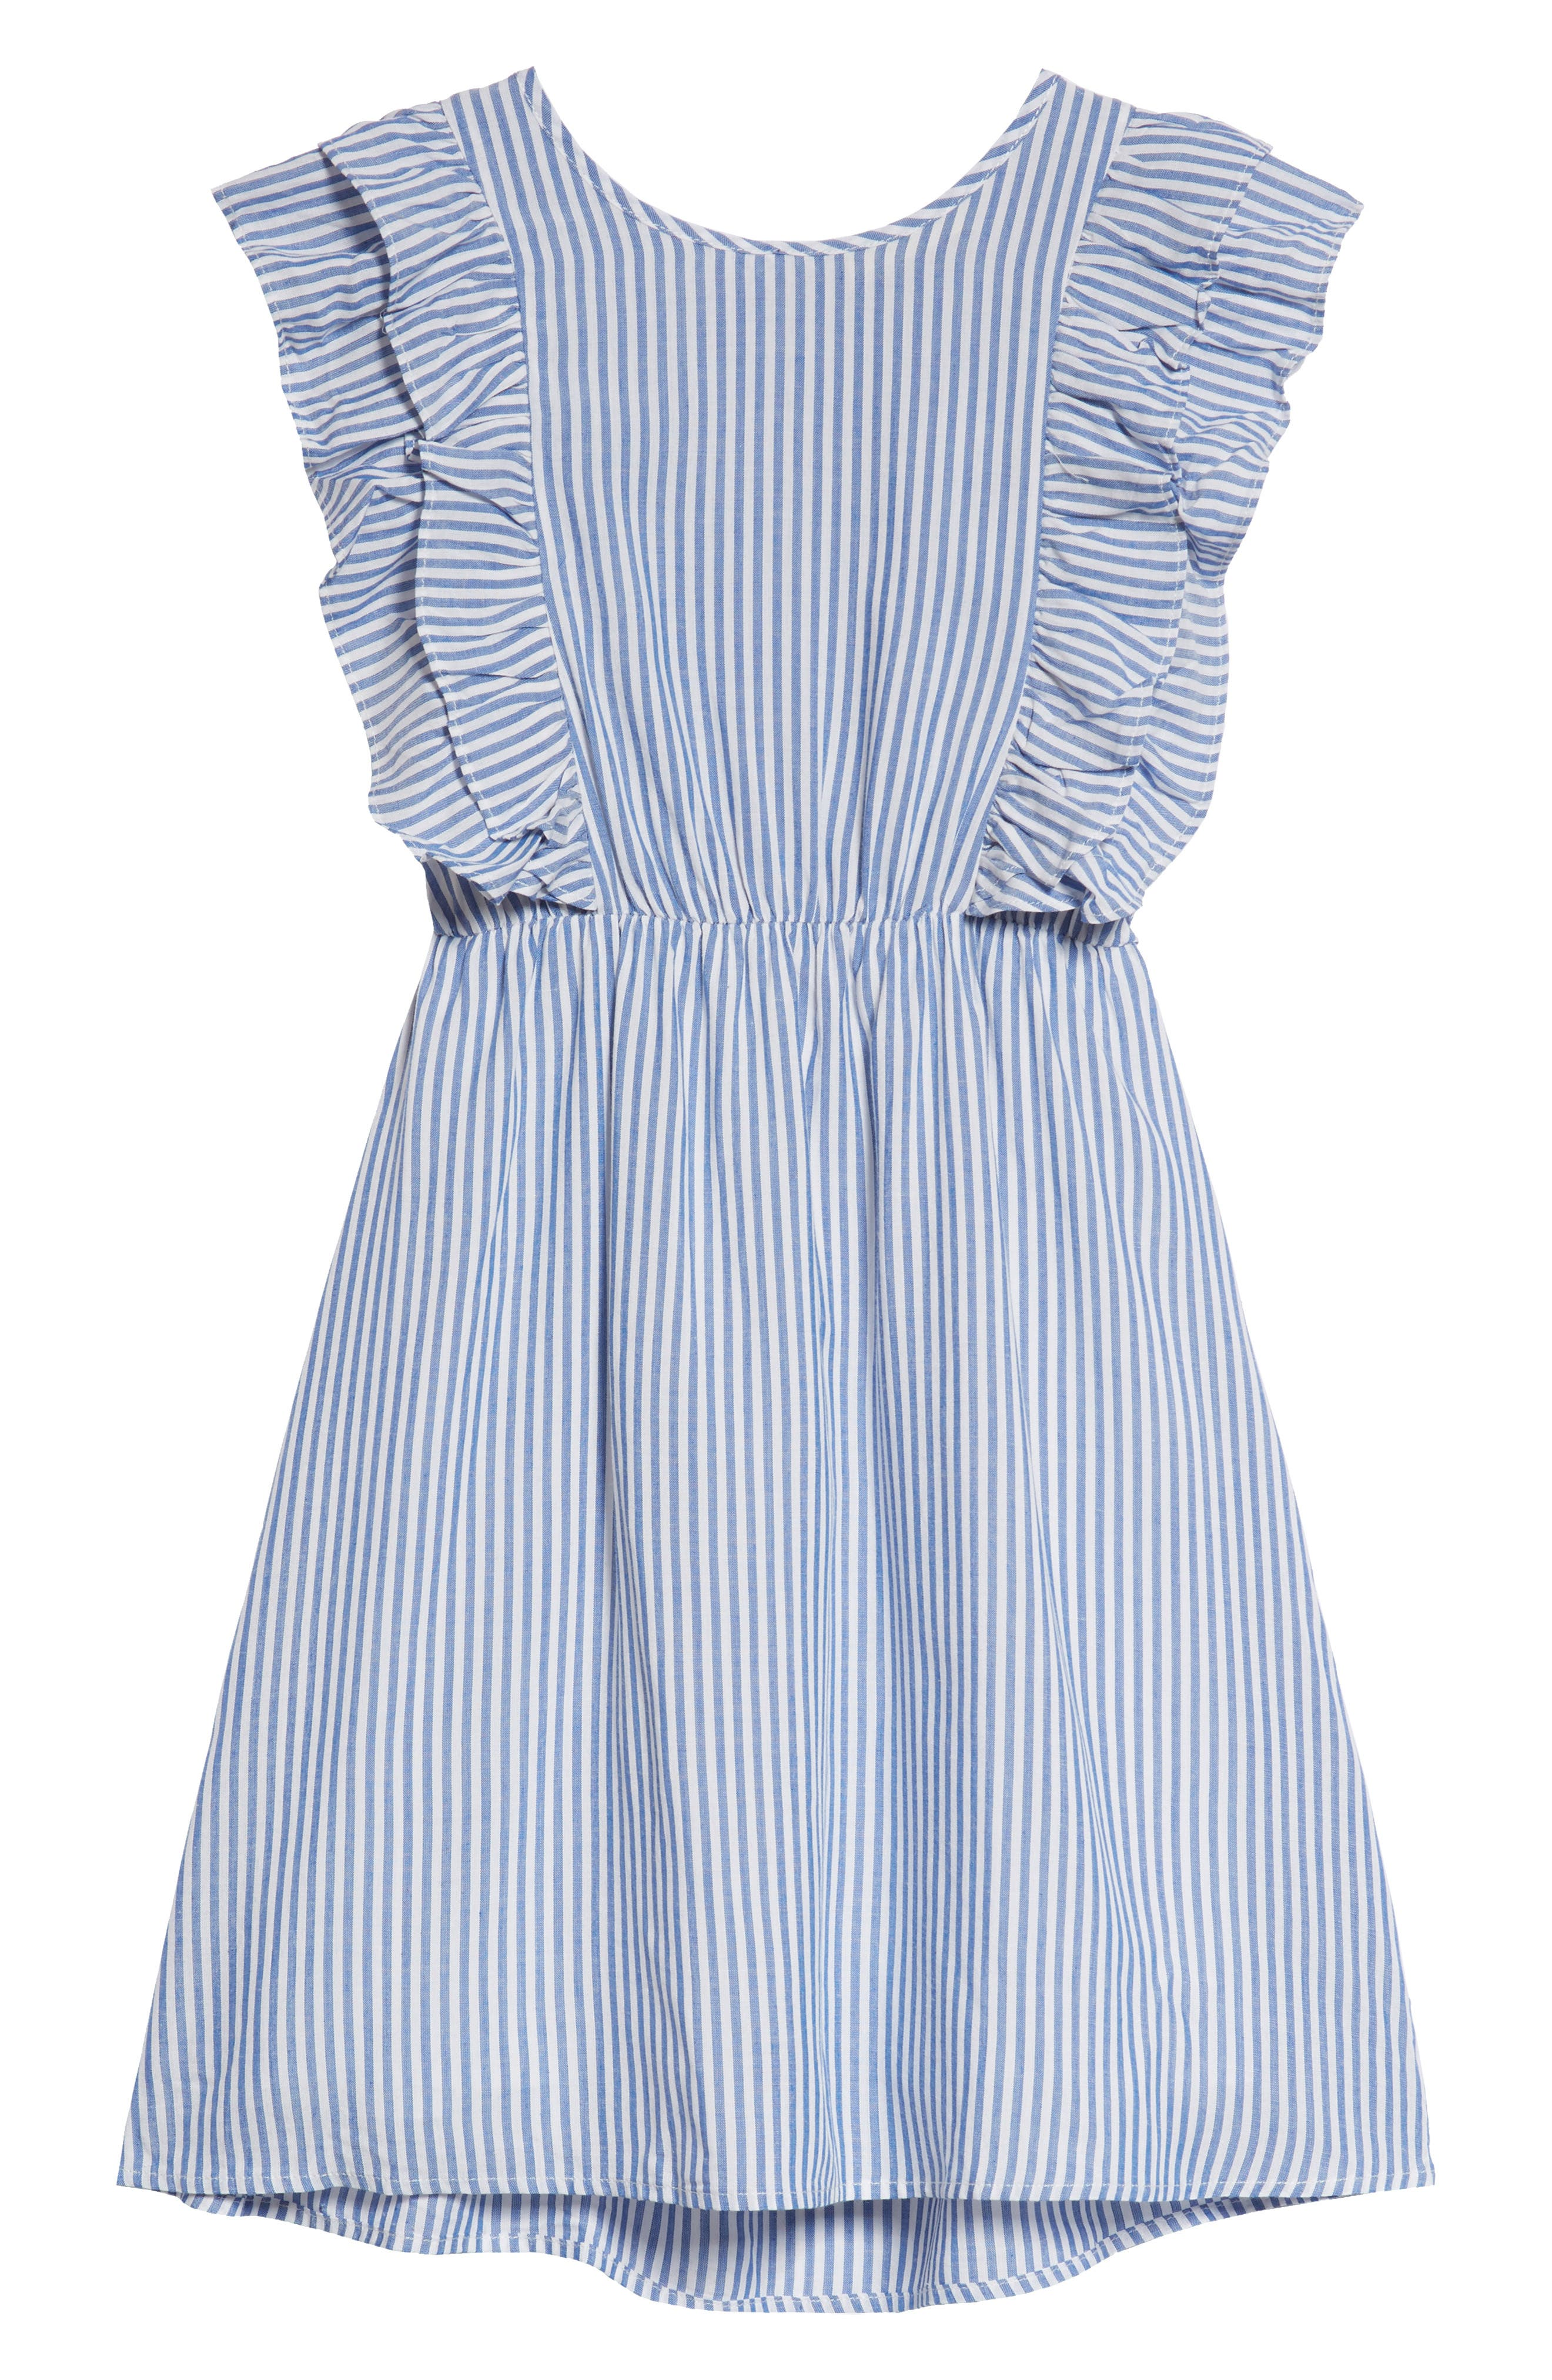 Poplin Stripe Ruffle Dress,                             Main thumbnail 1, color,